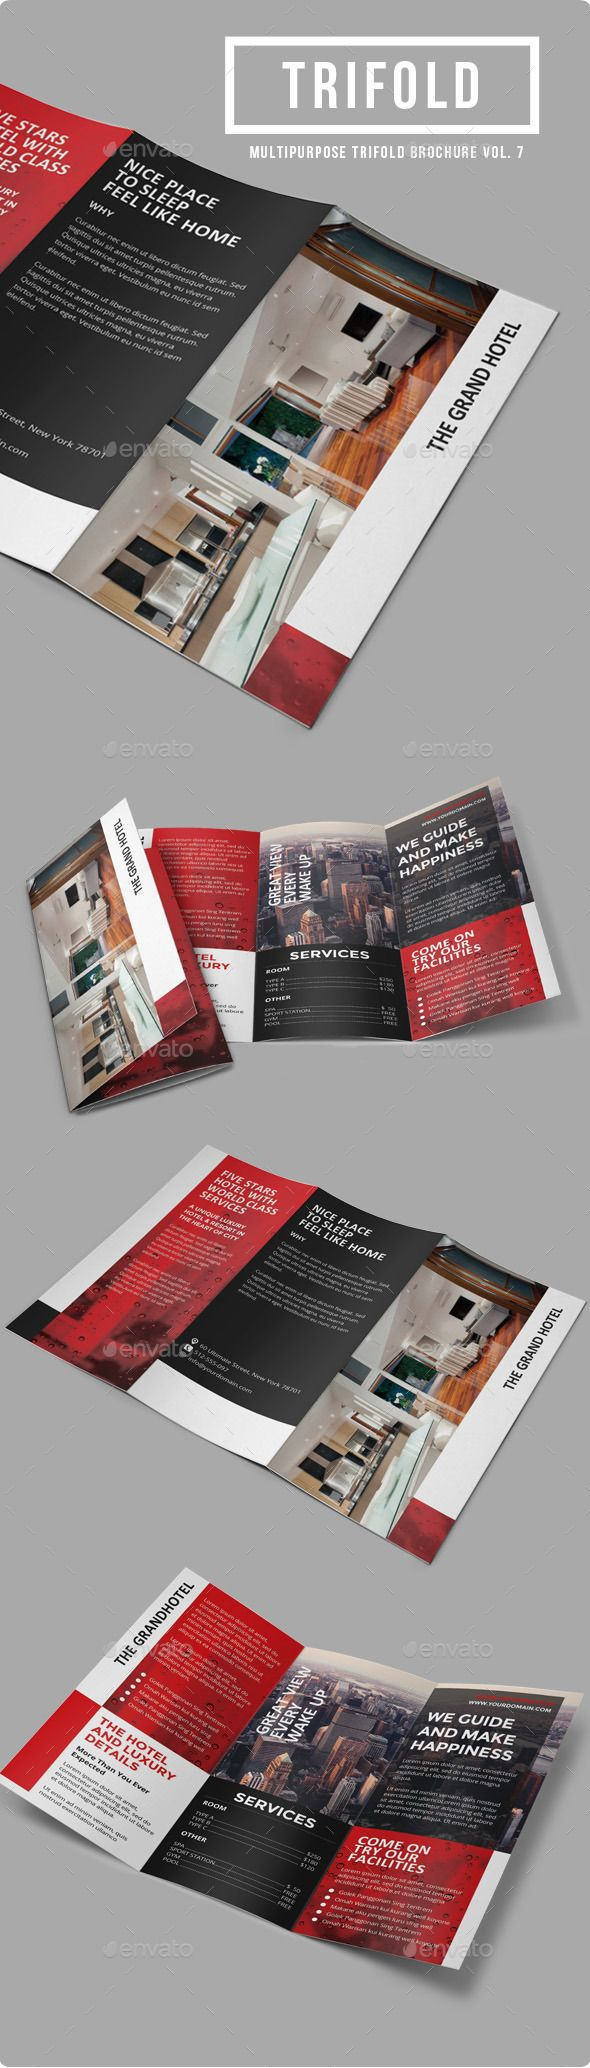 Sun Hotel - Multipurpose Trifold Brochure Template #design Download: http://graphicriver.net/item/sun-hotel-multipurpose-trifold-brochure-vol-7/9870612?ref=ksioks